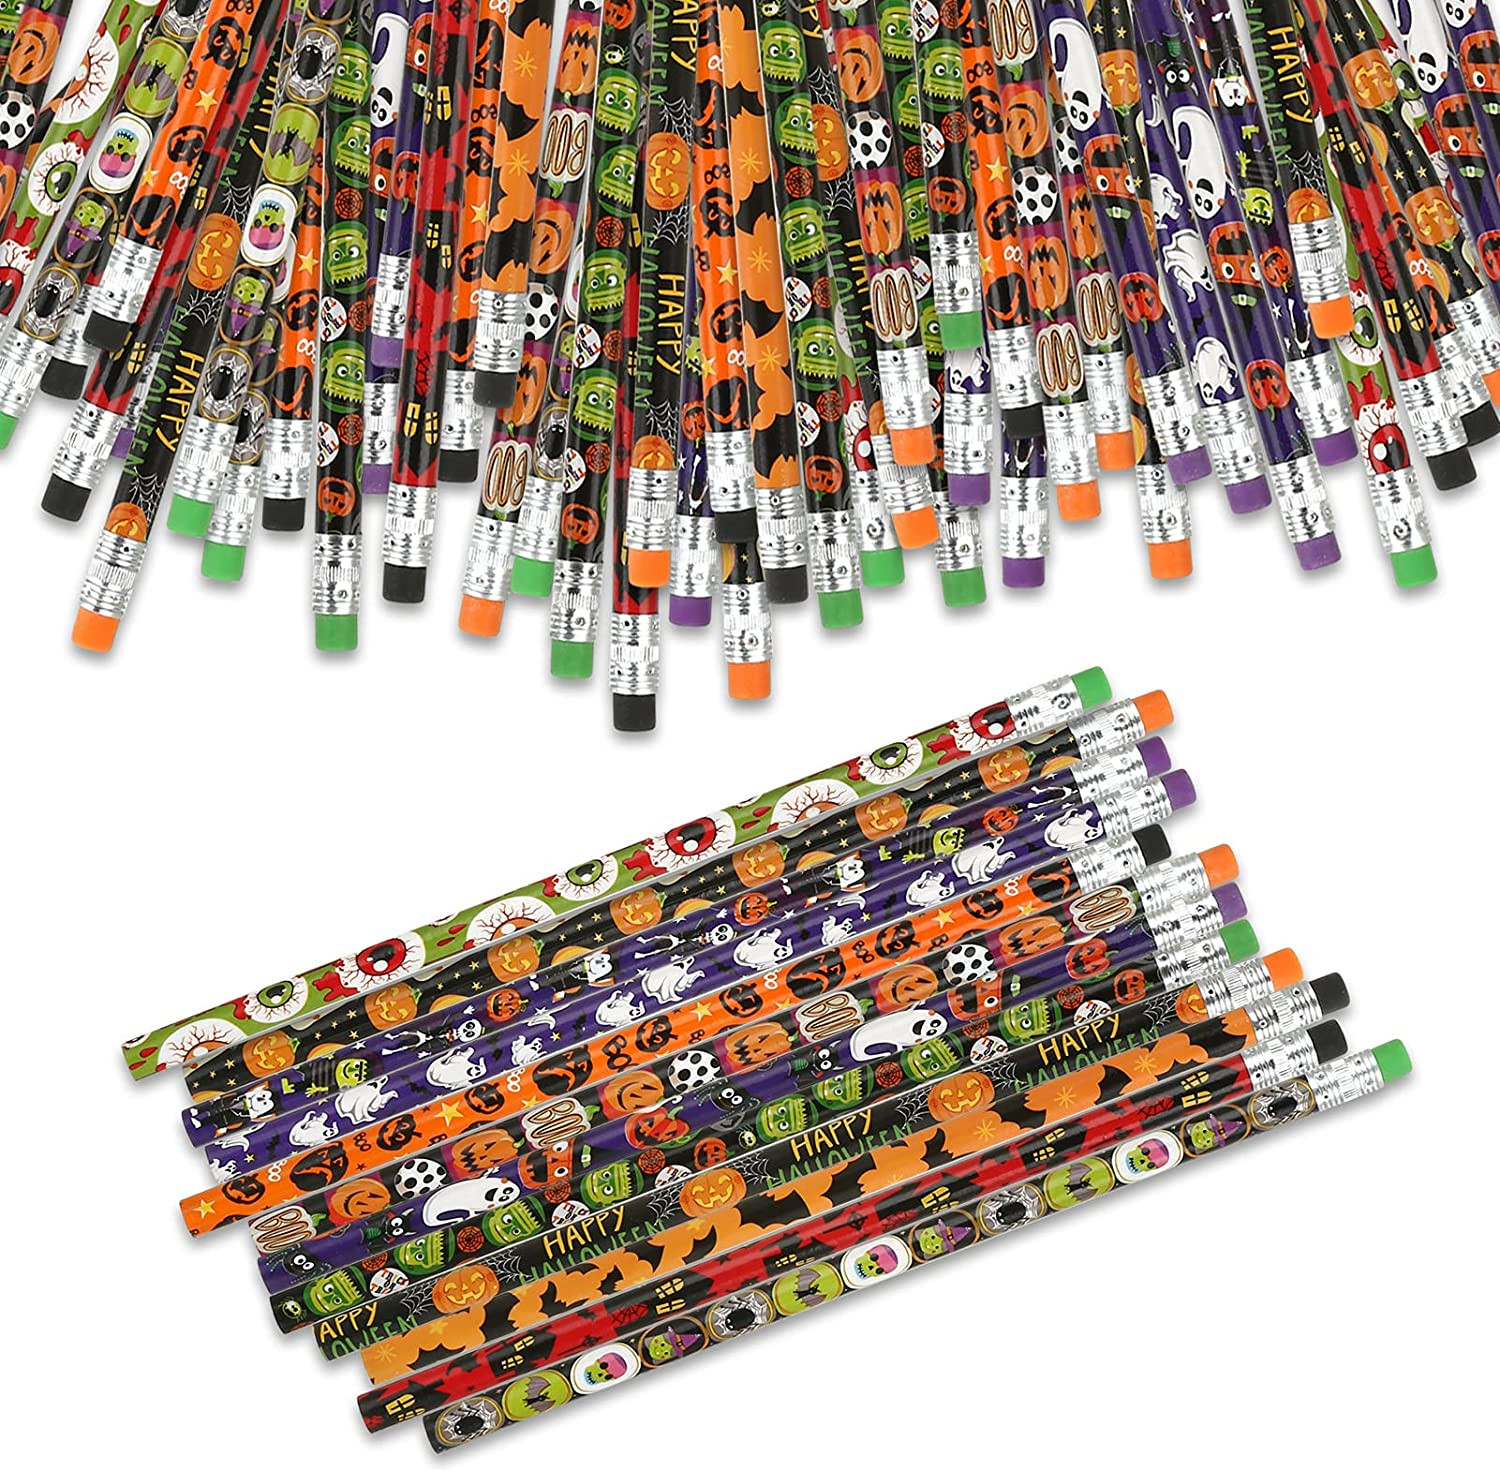 KESOTE Long Beach Mall Halloween Pencils for online shopping Par with Kids Erasers